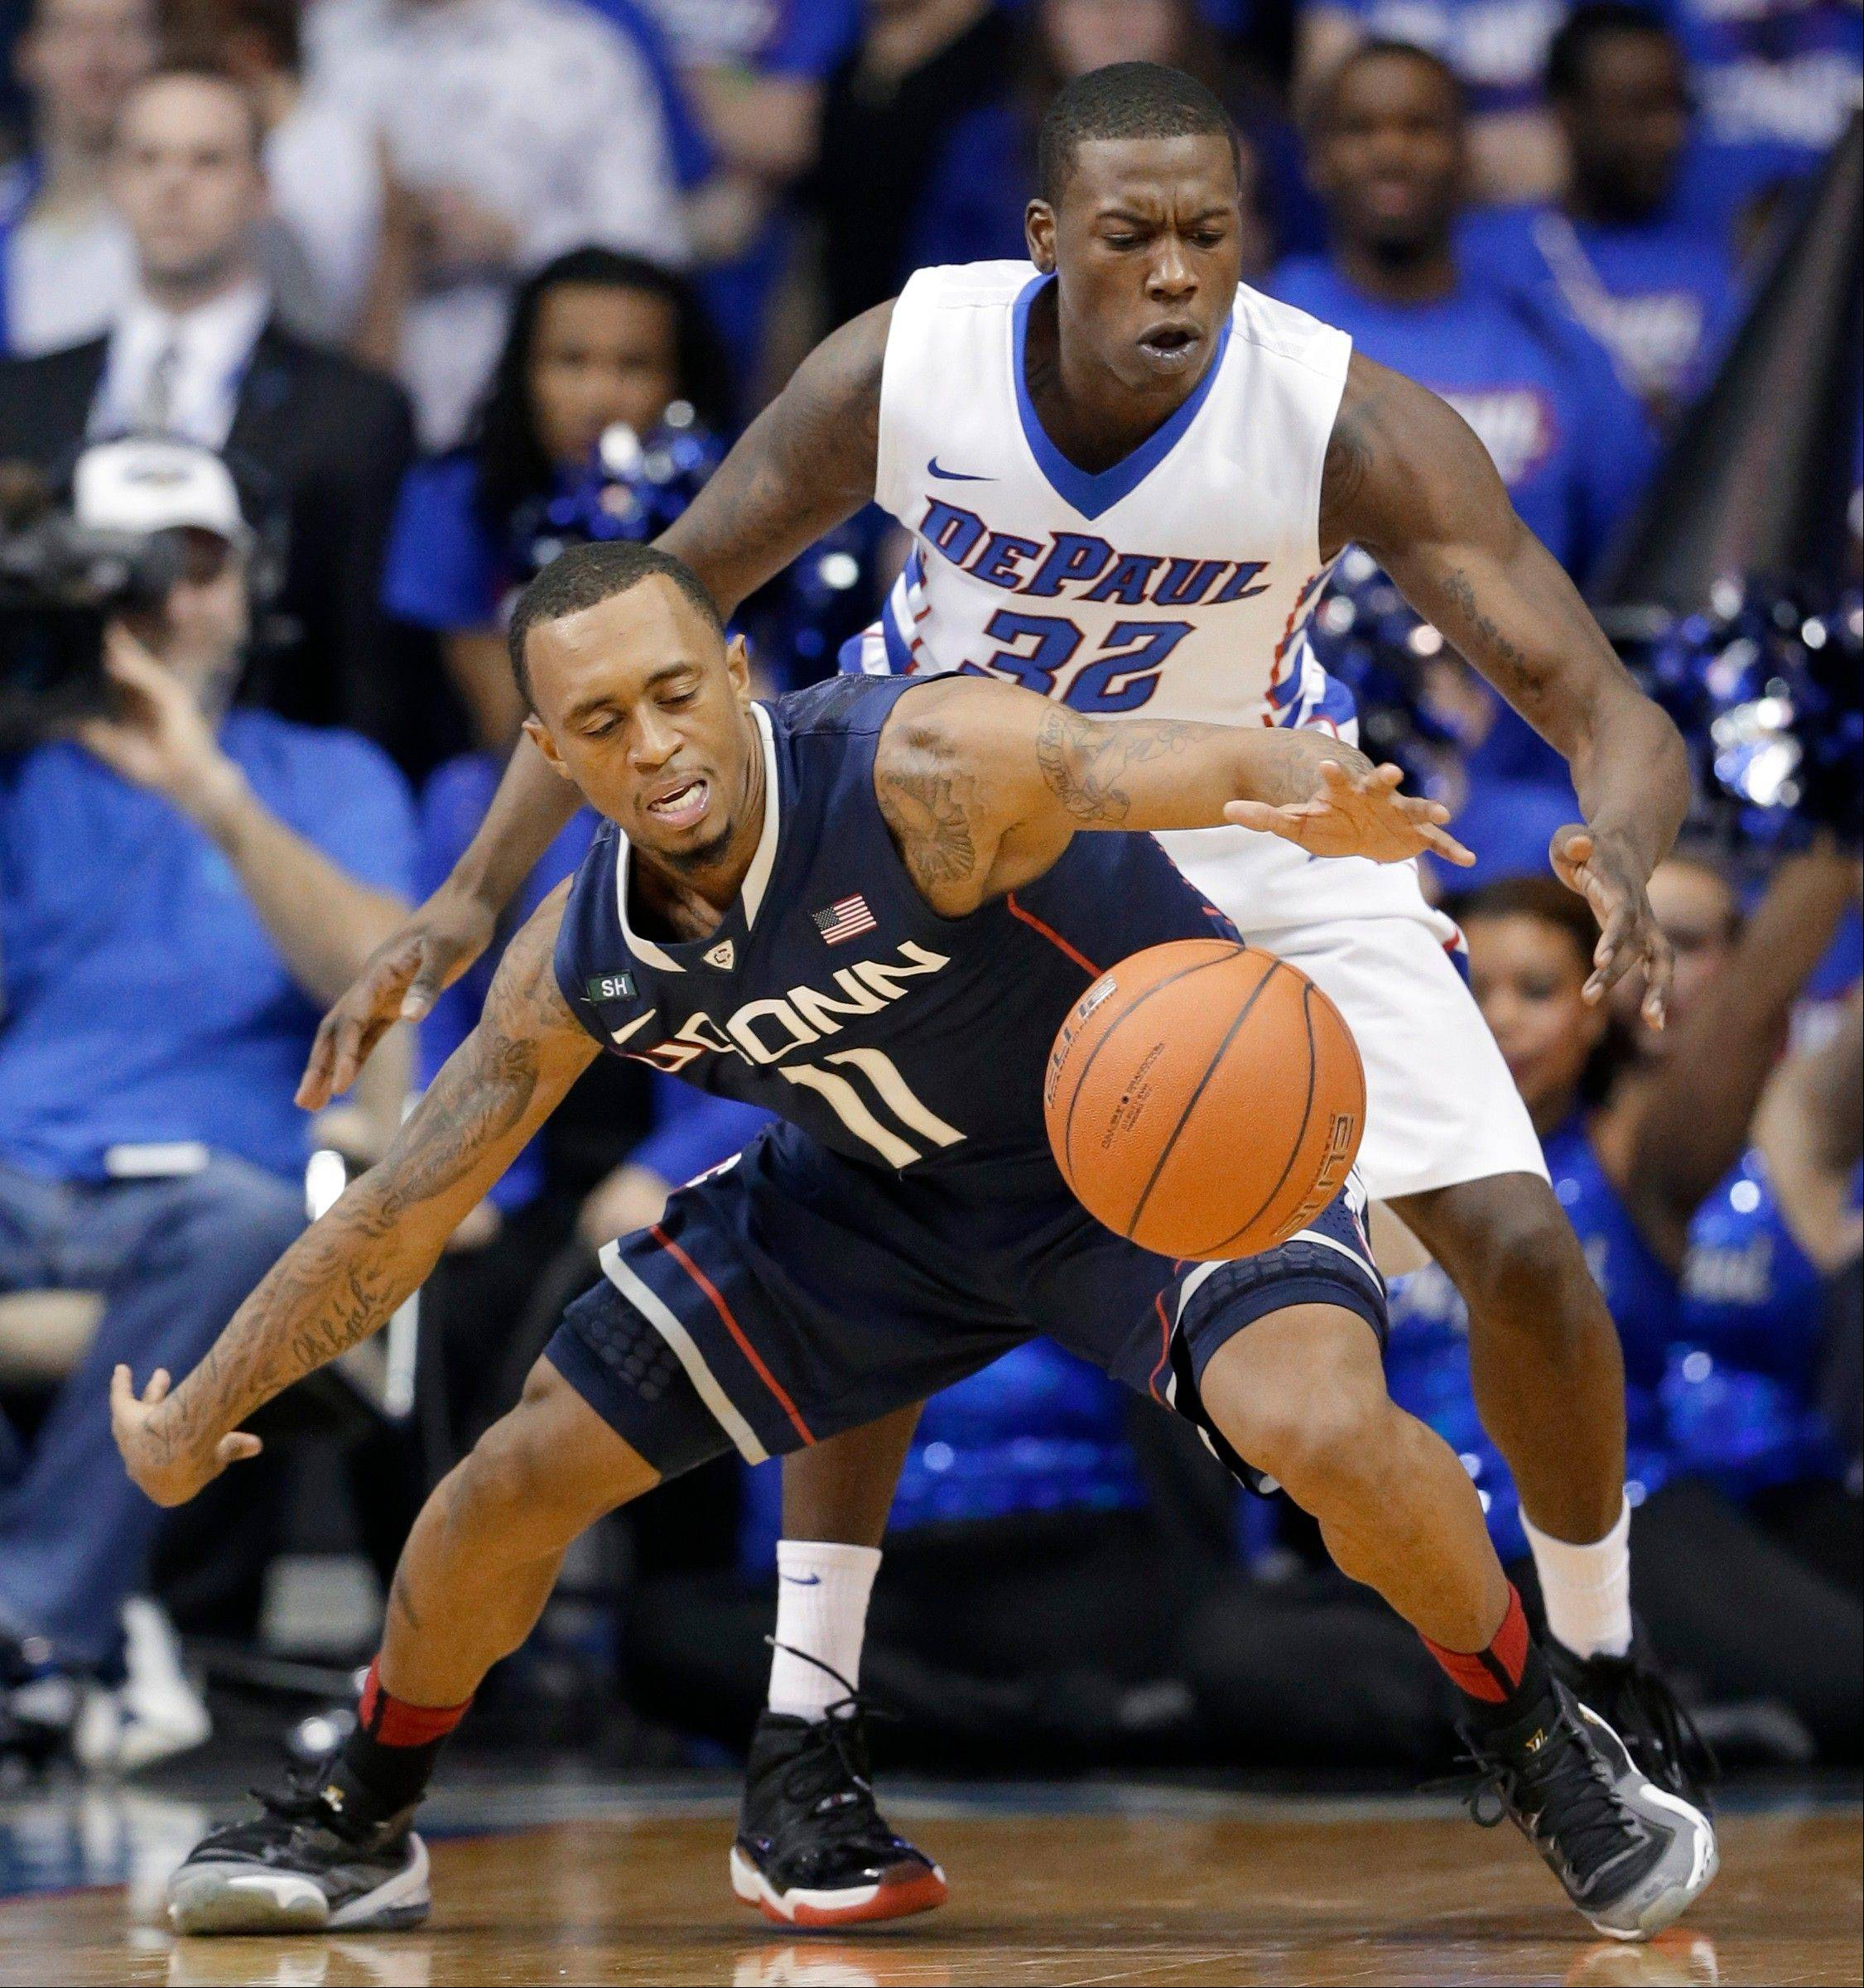 Connecticut guard Ryan Boatright (11) � who is from Aurora � controls the ball against DePaul guard Charles McKinney (32) during the game Saturday night in Rosemont. Connecticut won 81-69.